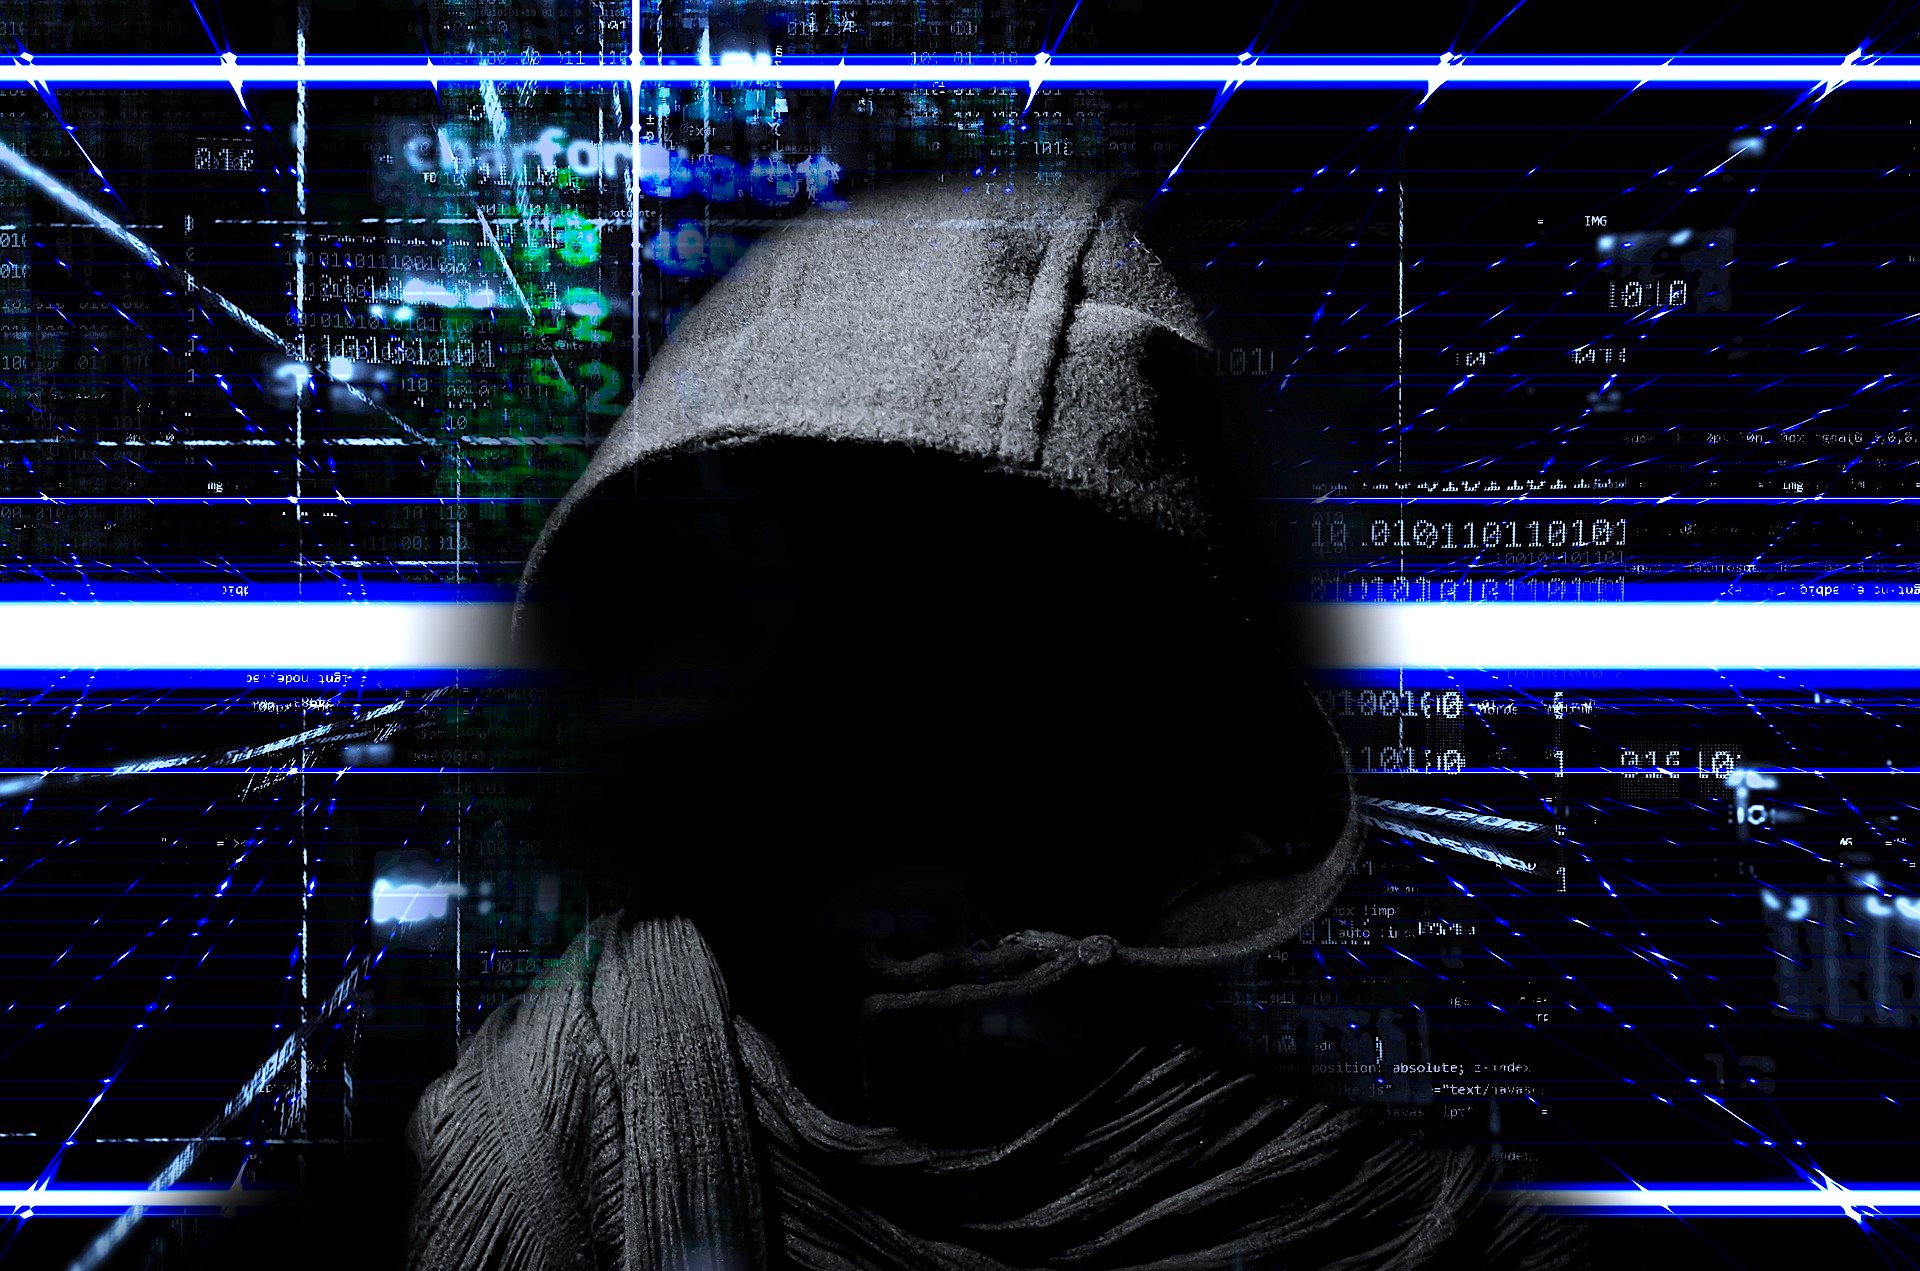 Scope of SolarWinds hack grows as Microsoft moves to protect customers - SiliconANGLE